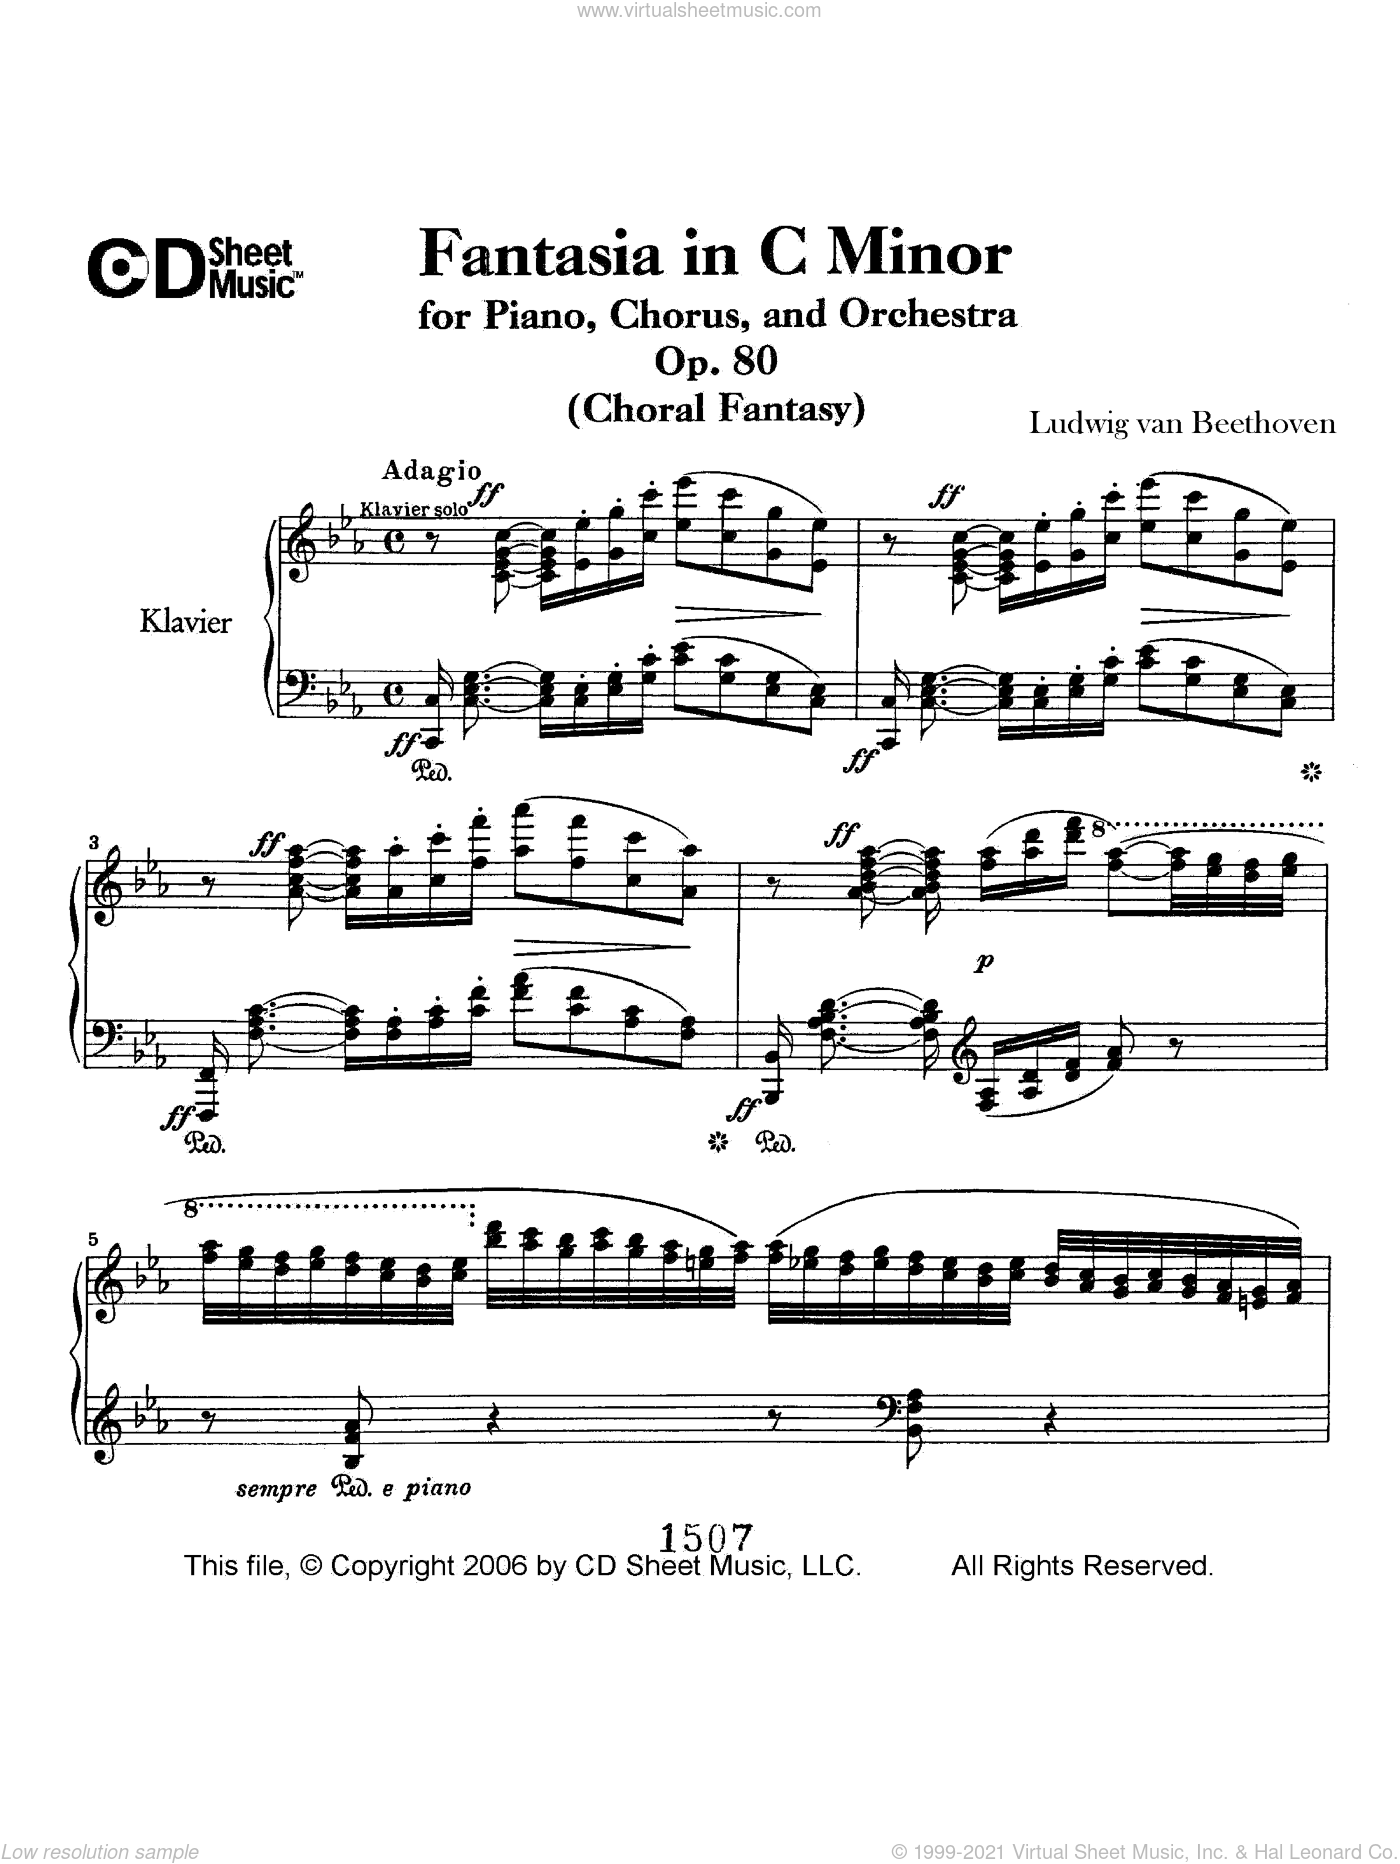 Fantasia In C Minor For Piano, Chorus, And Orchestra (choral Fantasy), Op. 80 sheet music for piano solo by Ludwig van Beethoven. Score Image Preview.